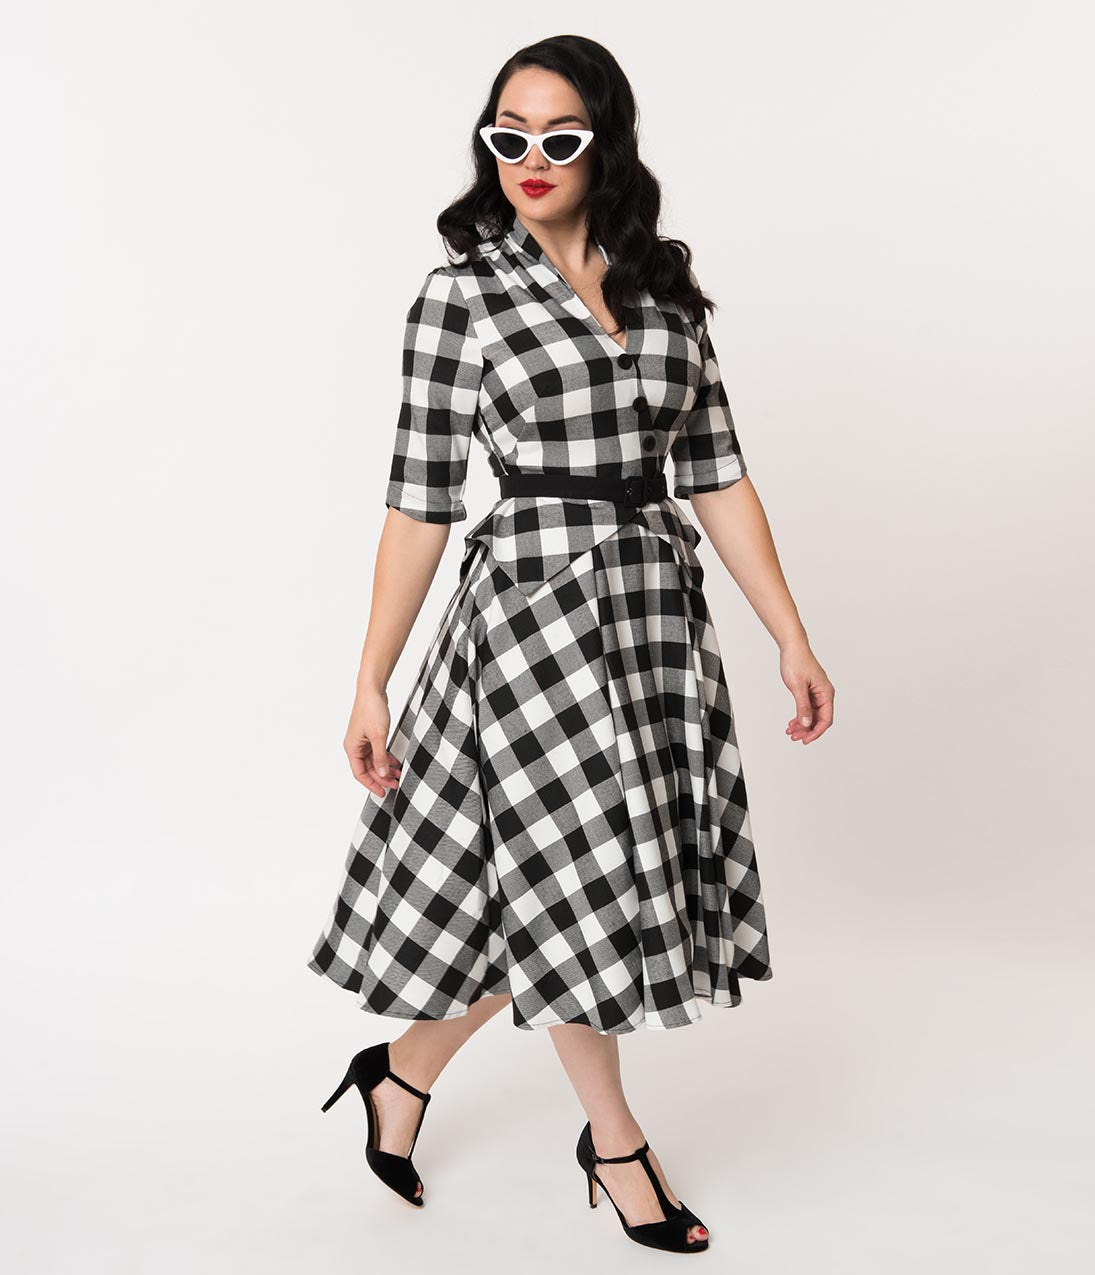 1950s Dresses, 50s Dresses | 1950s Style Dresses Miss Candyfloss 1950S Black  White Buffalo Plaid Chanelle Swing Dress $138.00 AT vintagedancer.com